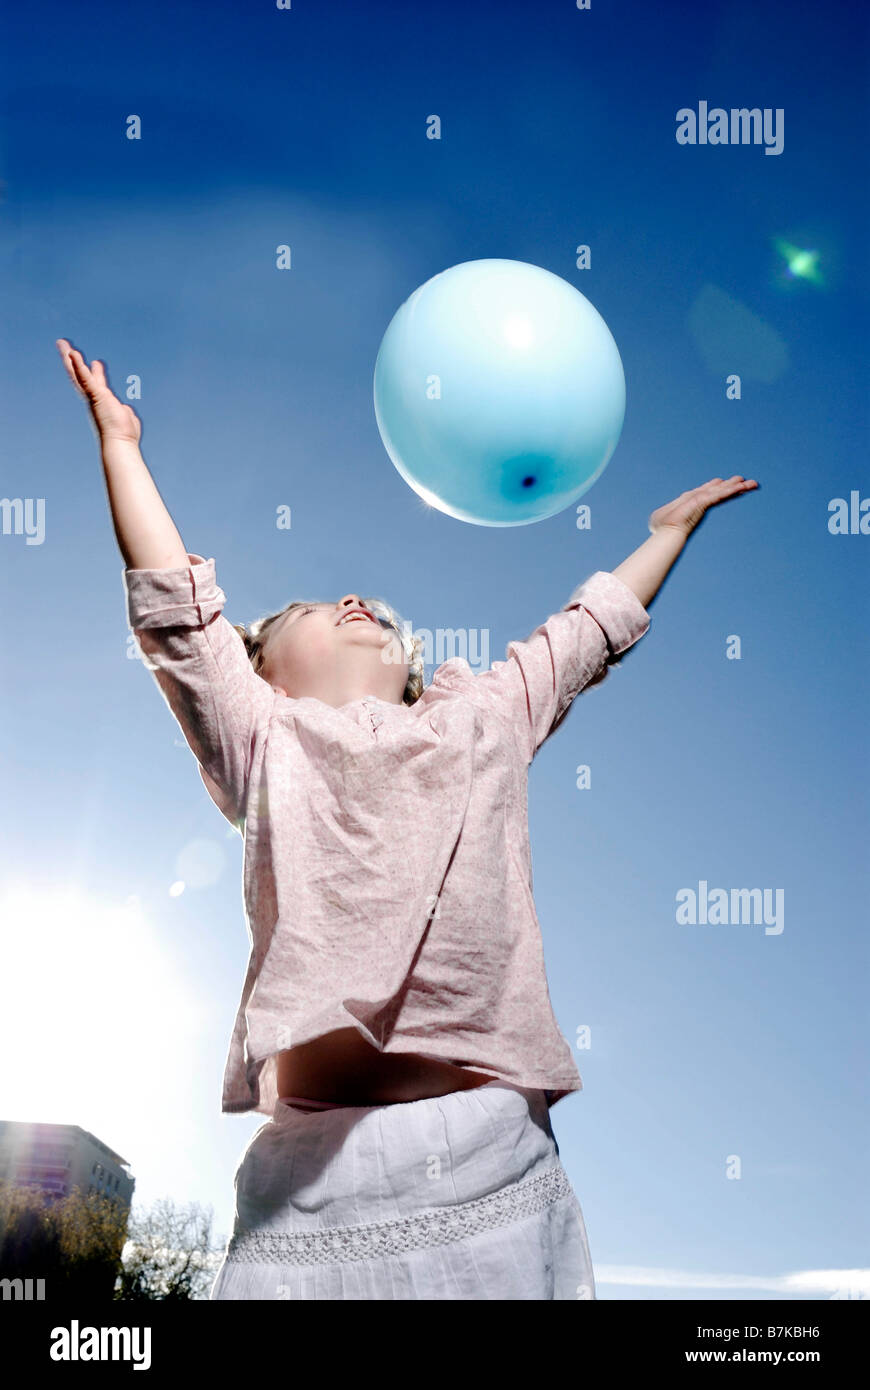 3 years old girl throwing a balloon - Stock Image